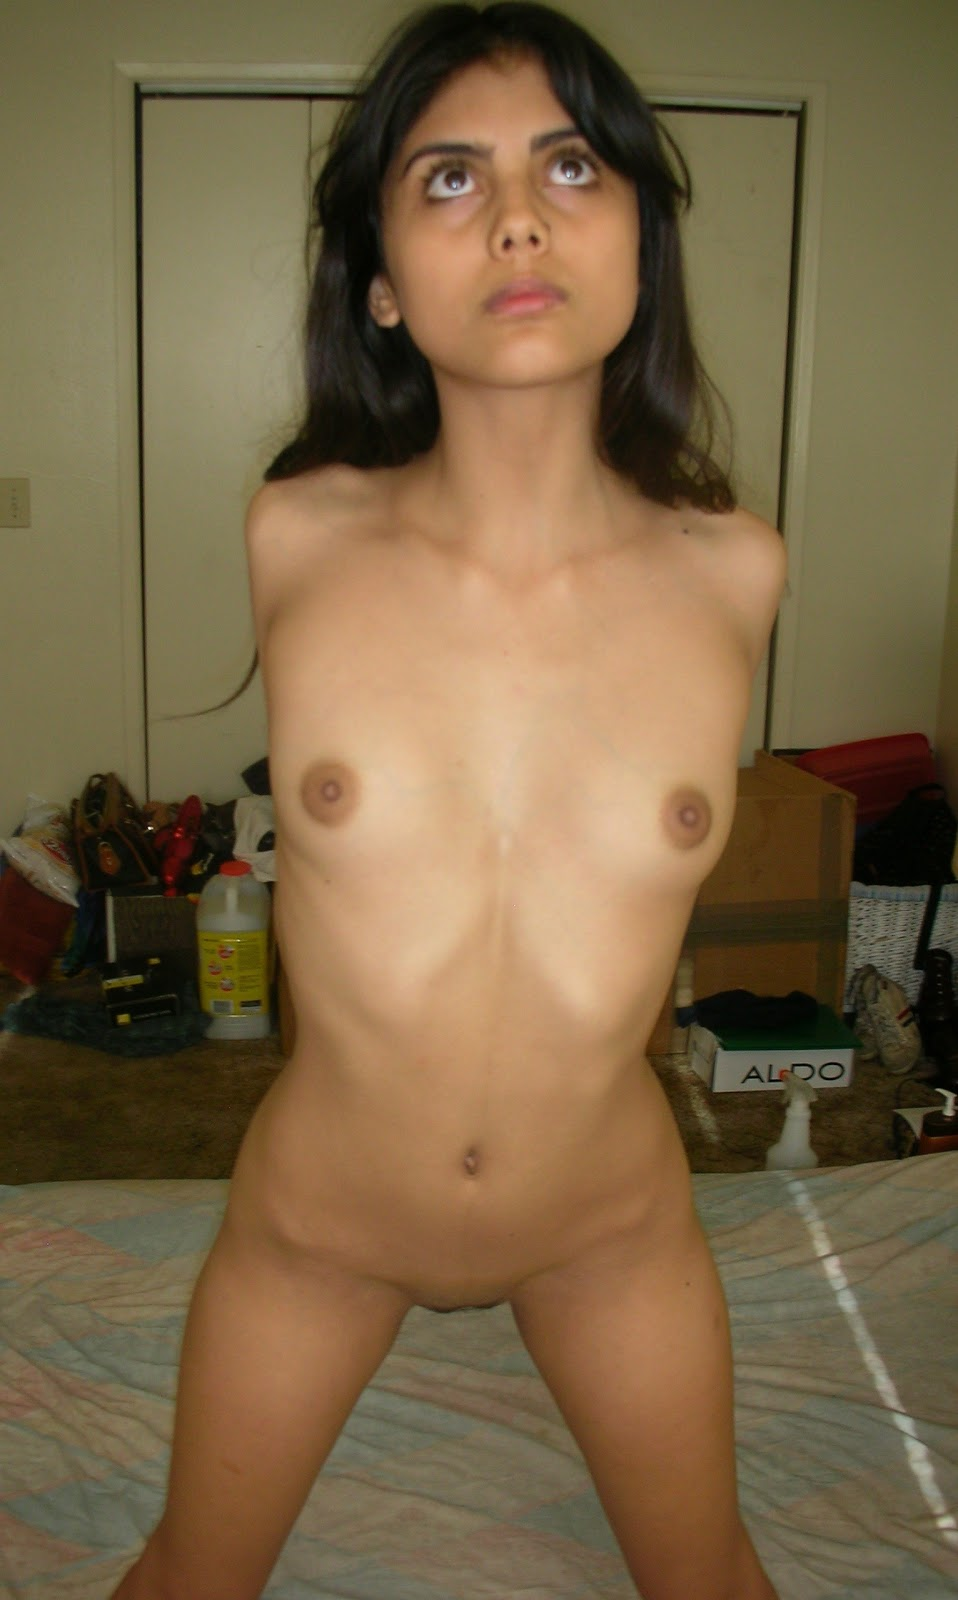 Old whore standing naked